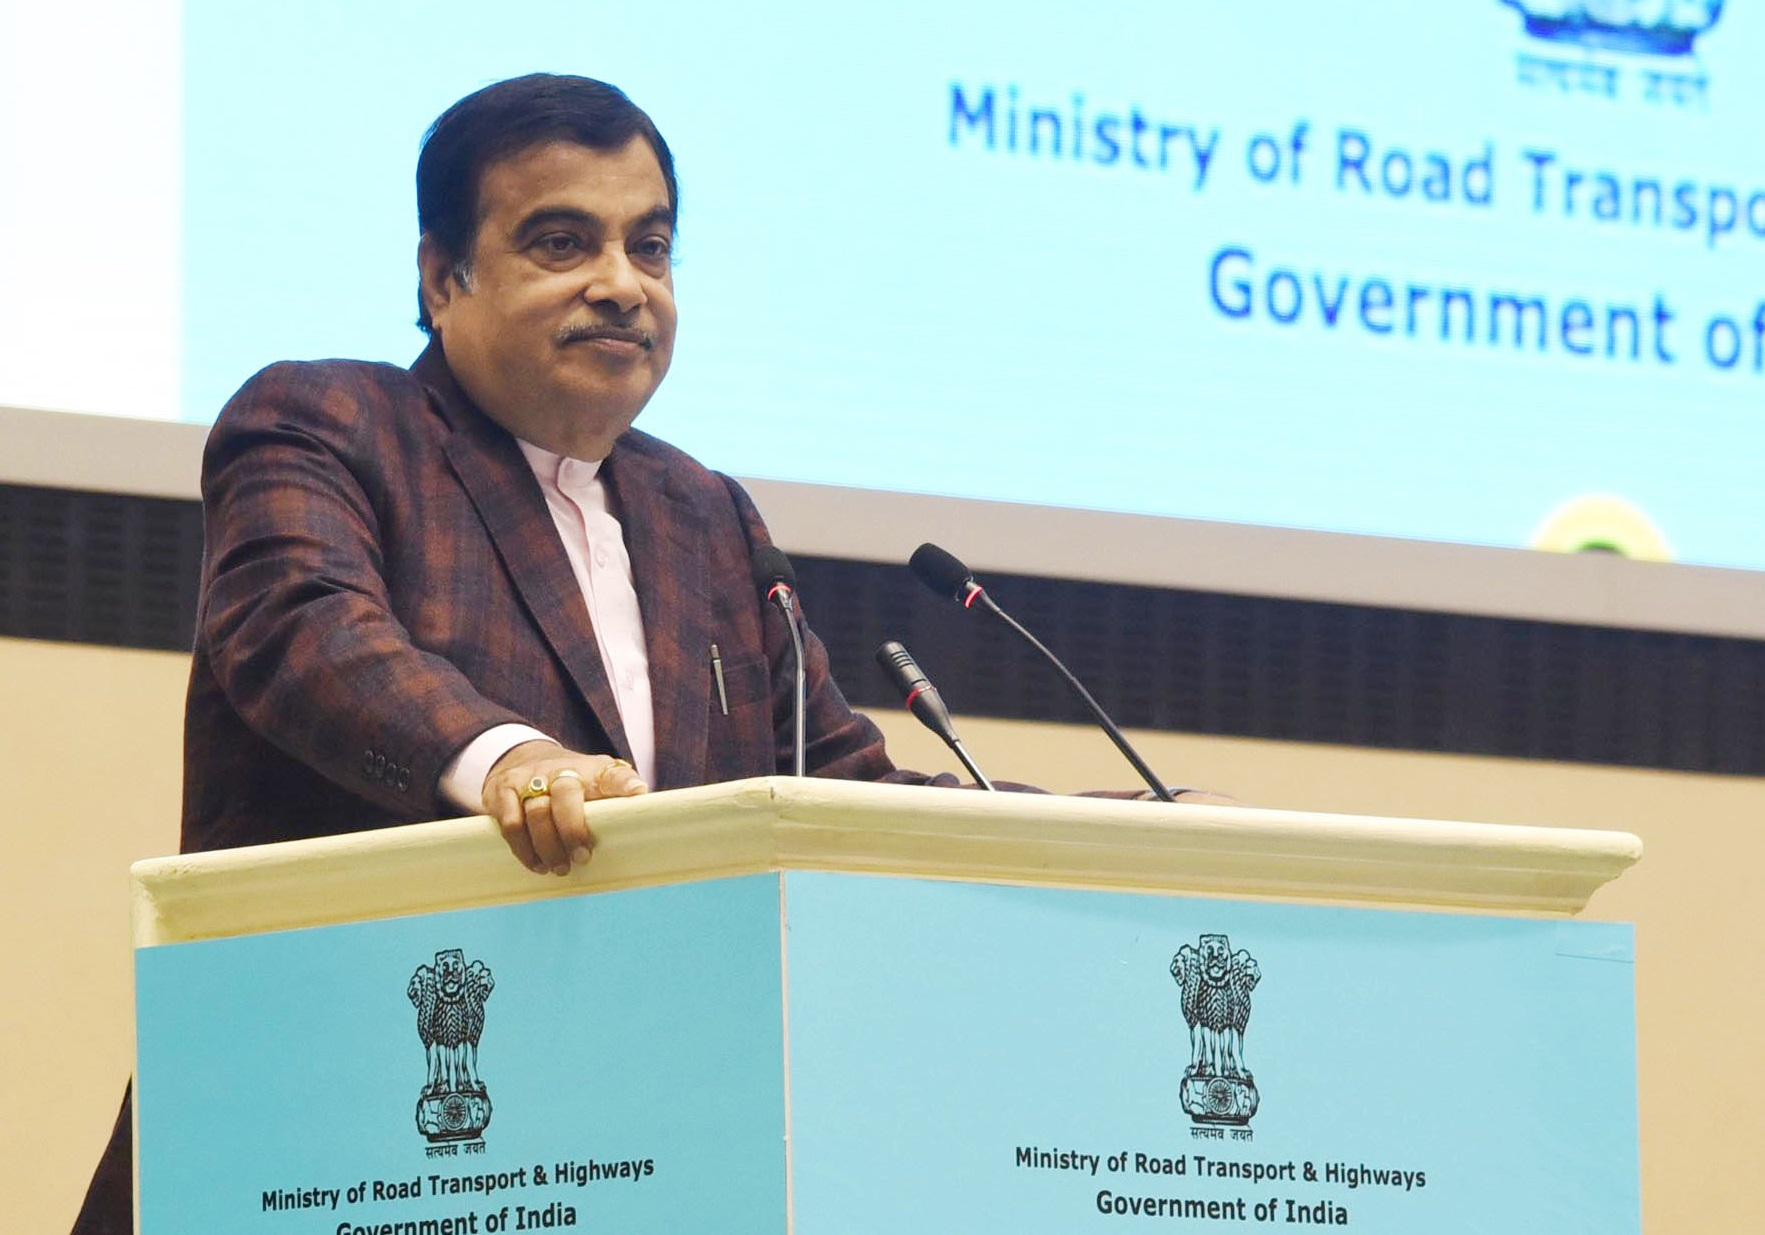 Rs 971 crore approved for Munger-Bhagalpur National Highway project